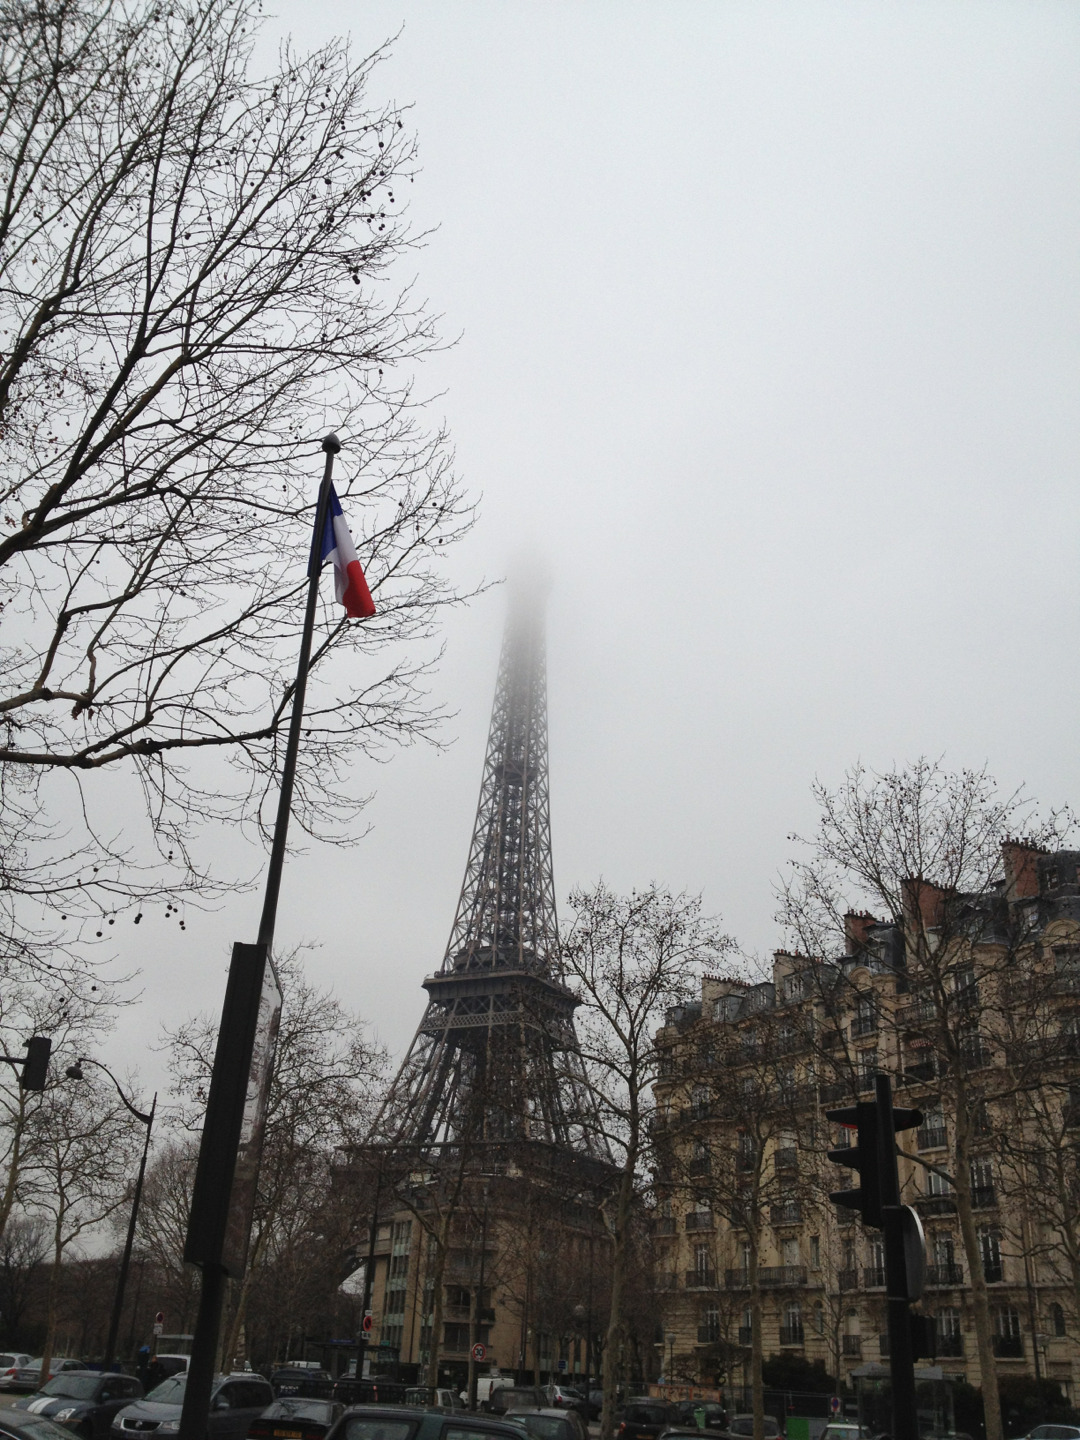 Ongoing gray skies in Paris this morning.  Contrast with http://newsweek-paris-france.tumblr.com/post/37706986703/a-crisp-cold-morning-this-morning-in-paris-with  — CMSD